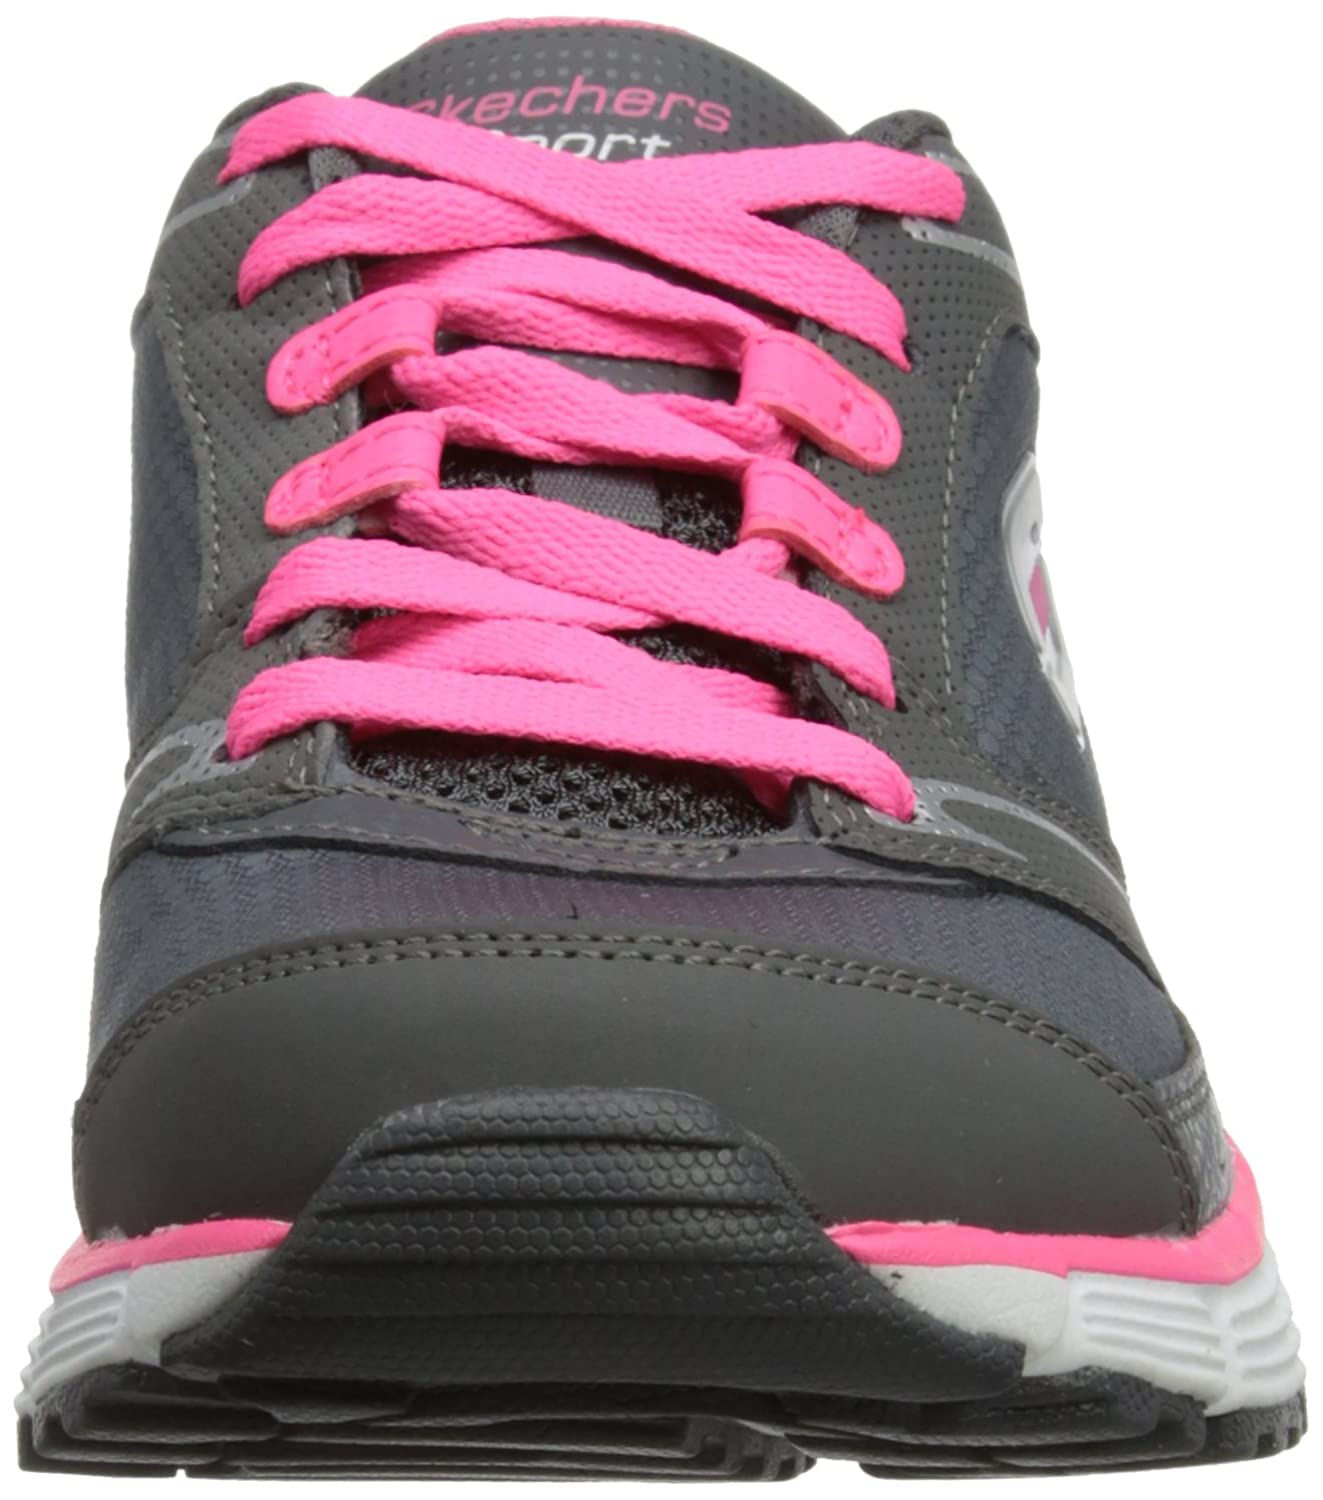 Skechers Agility - Rewind, Mujer, Gris (cchp), 35.5